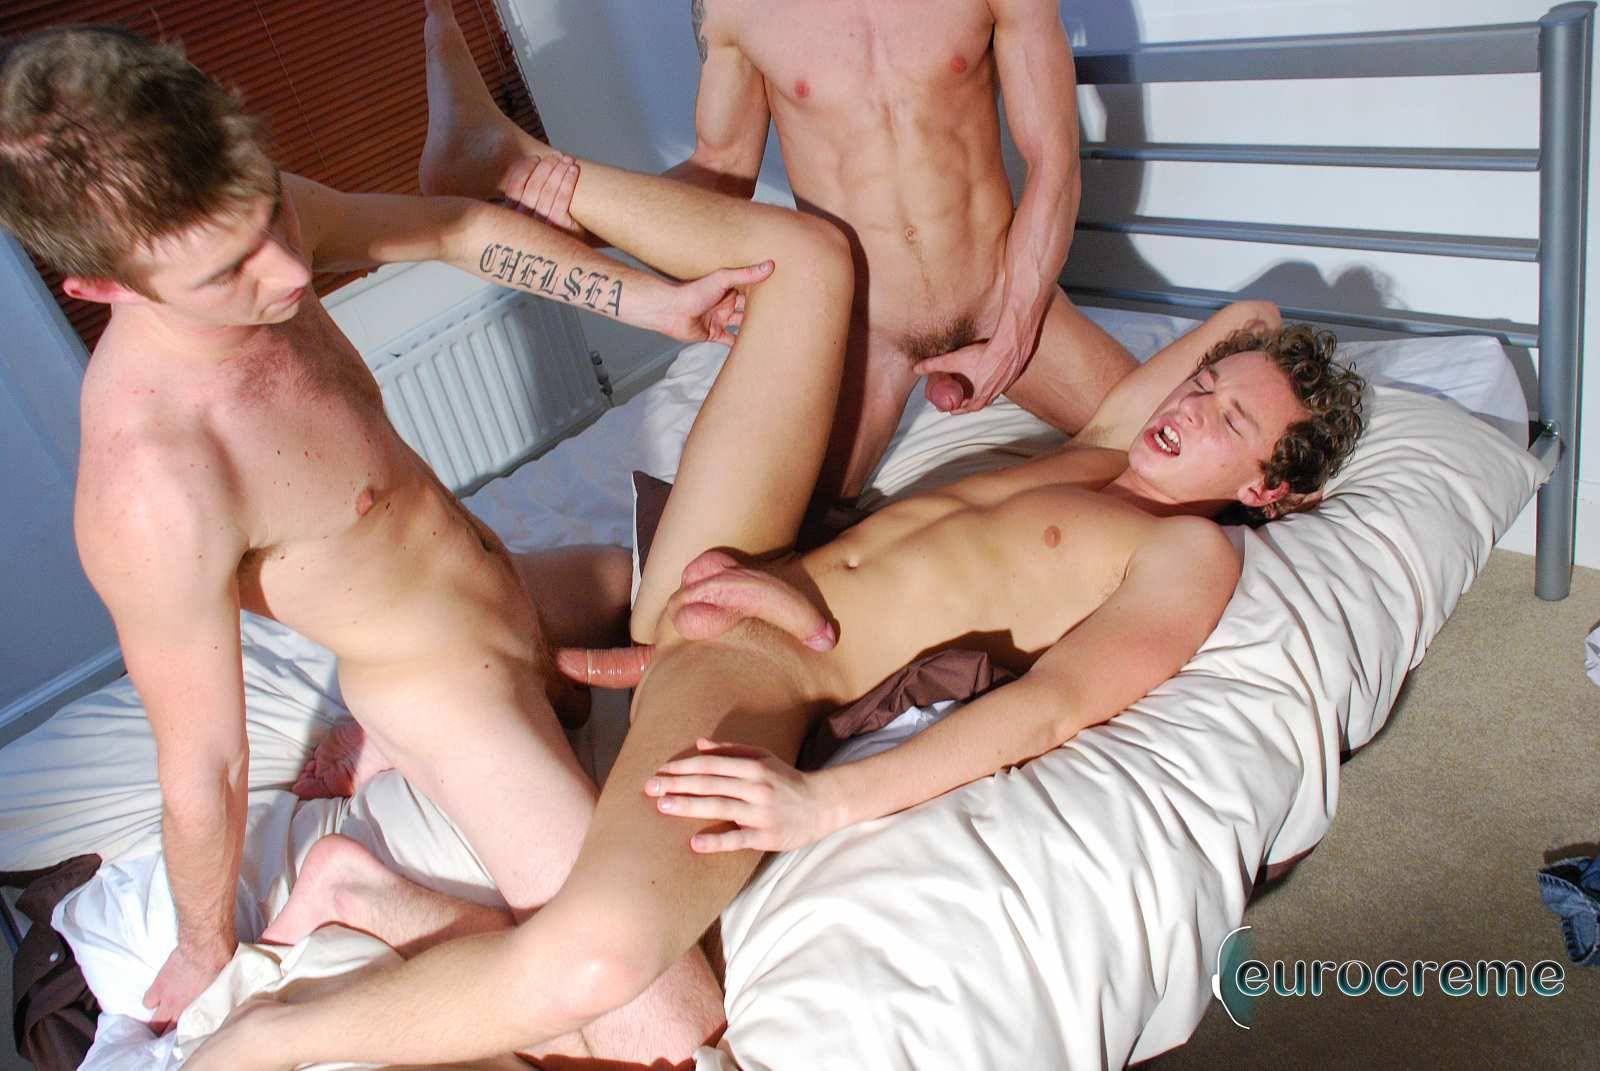 Eurocreme Matt Hughes and Alex Stevens and Philipe Delvaux Twinks Fucking Amateur Gay Porn 19 Matt Hughes Uses His 11 Inch Uncut Cock On Two Tricks